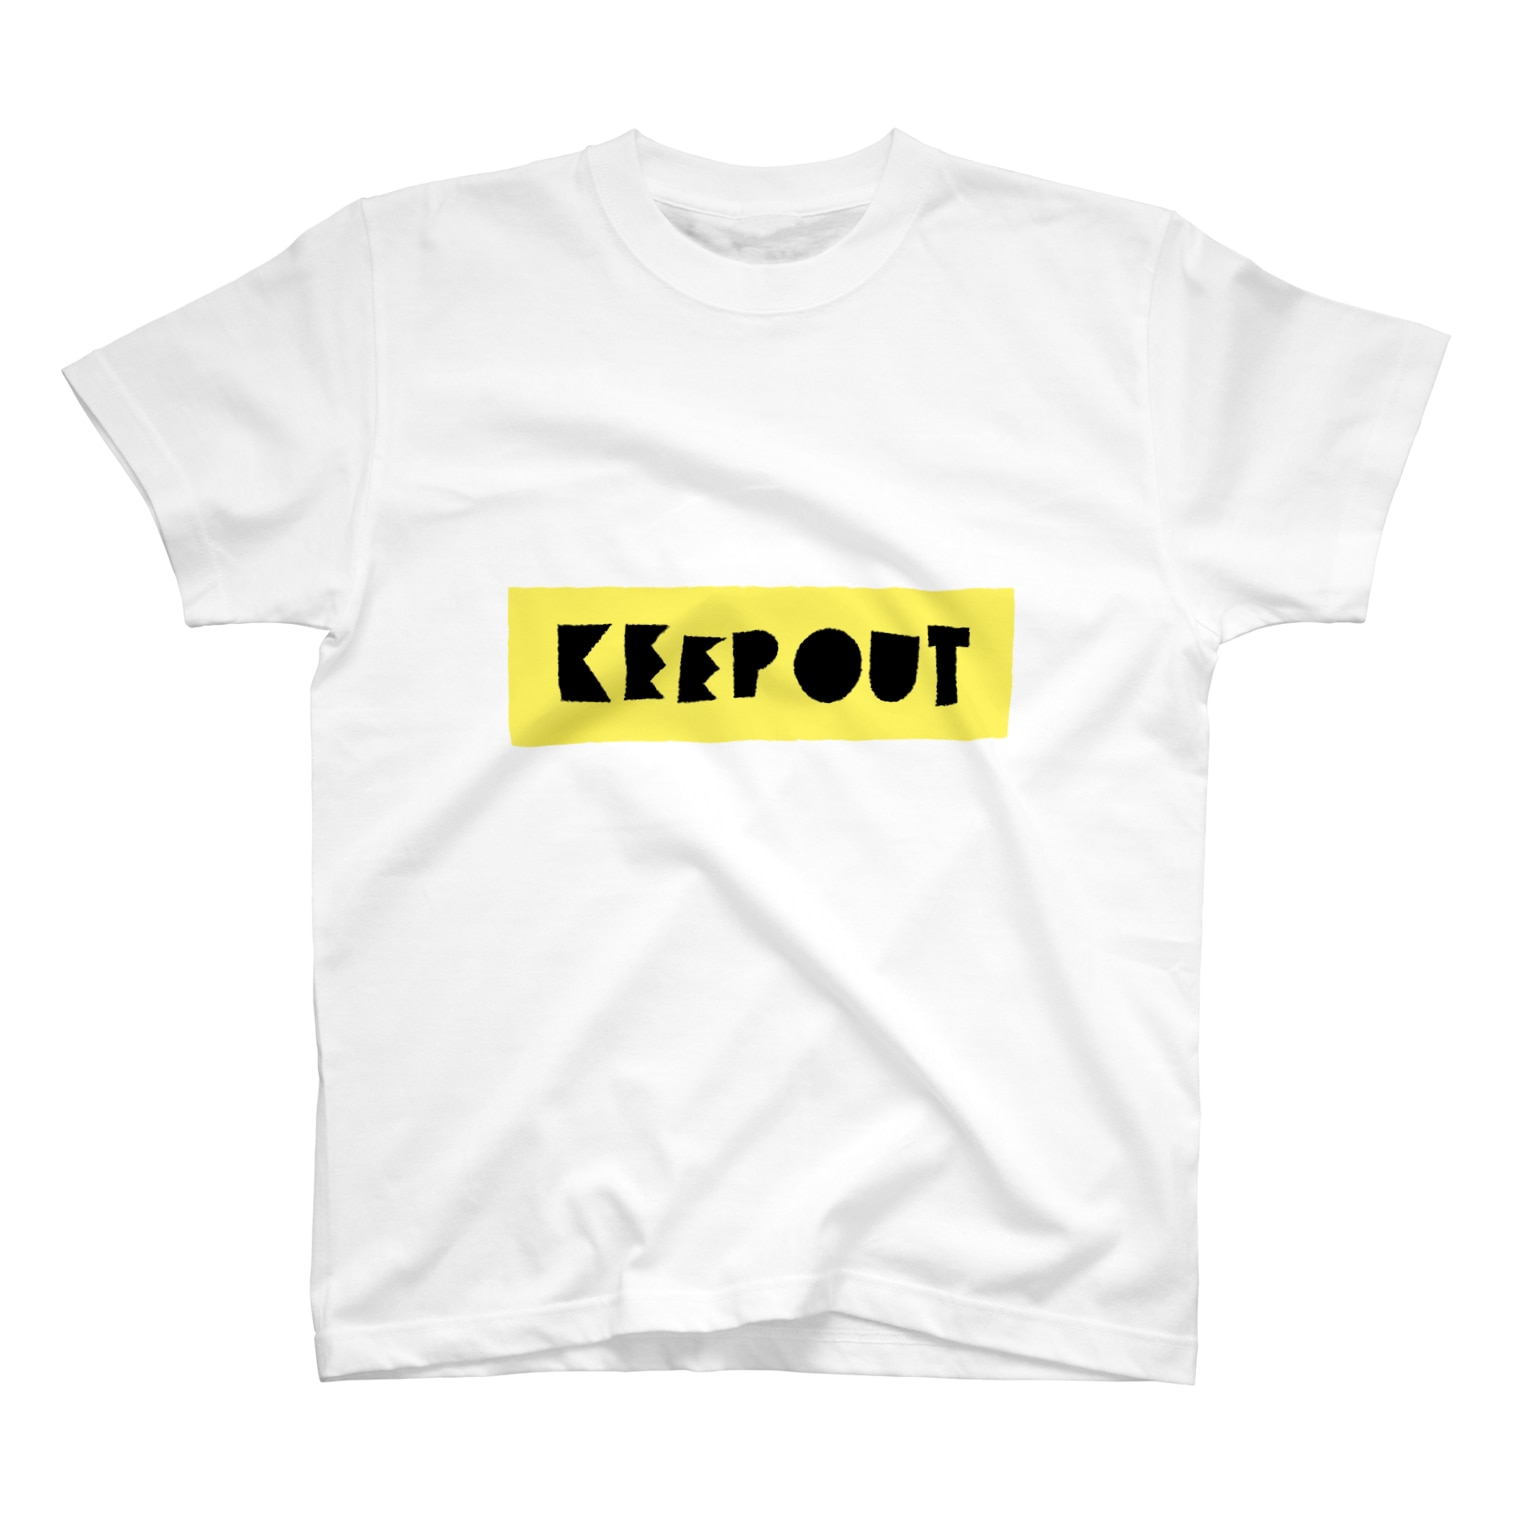 takeshitsuboiのKEEP OUT Tシャツ